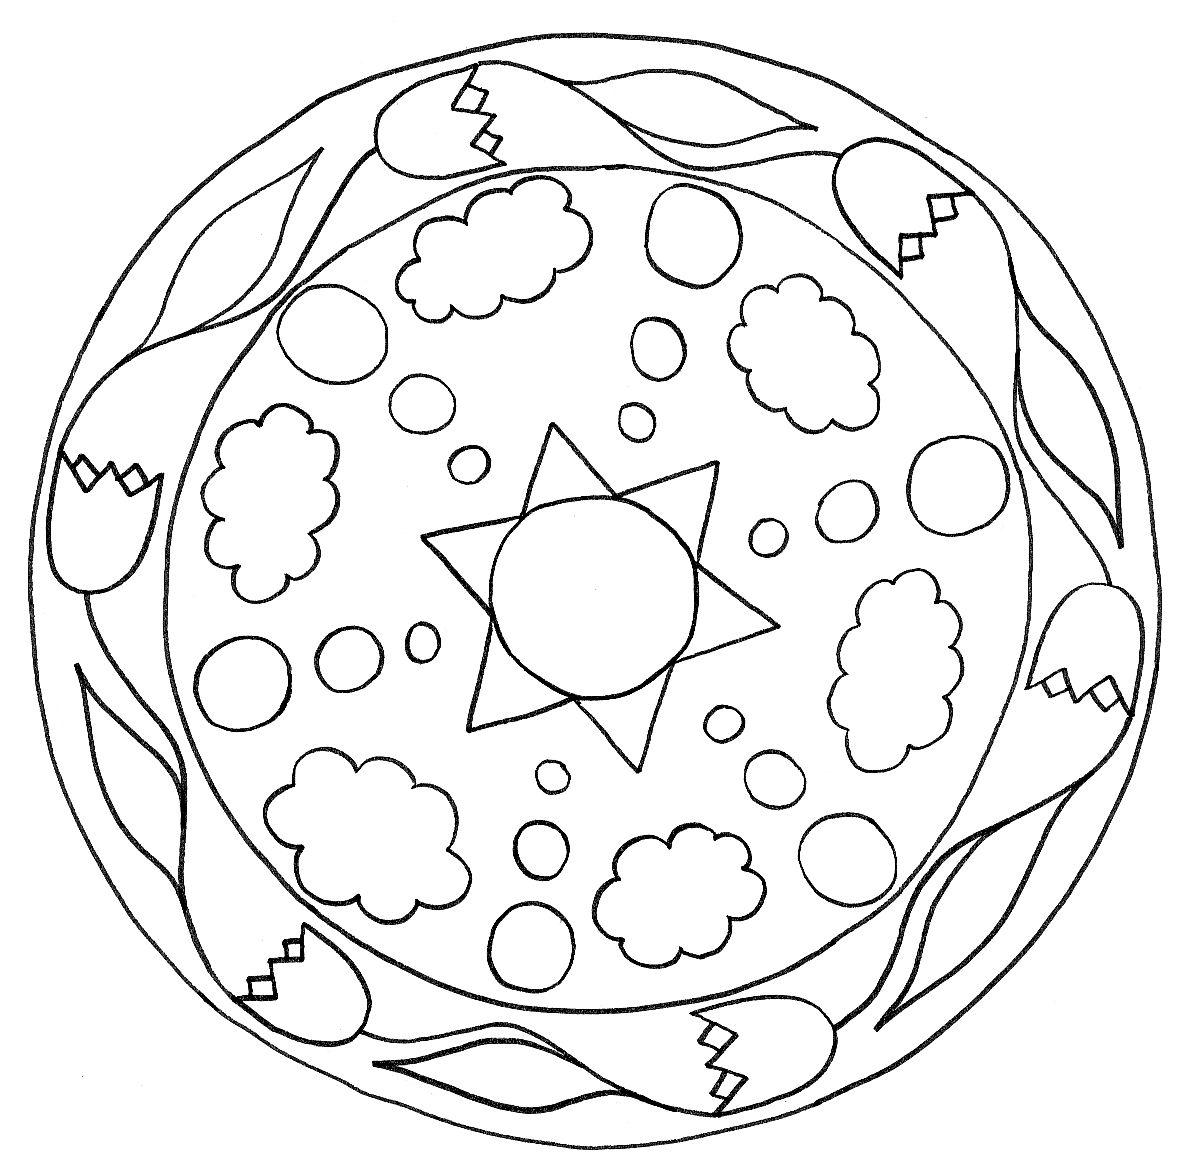 simple mandalas for kids coloring - Simple Mandala Coloring Pages